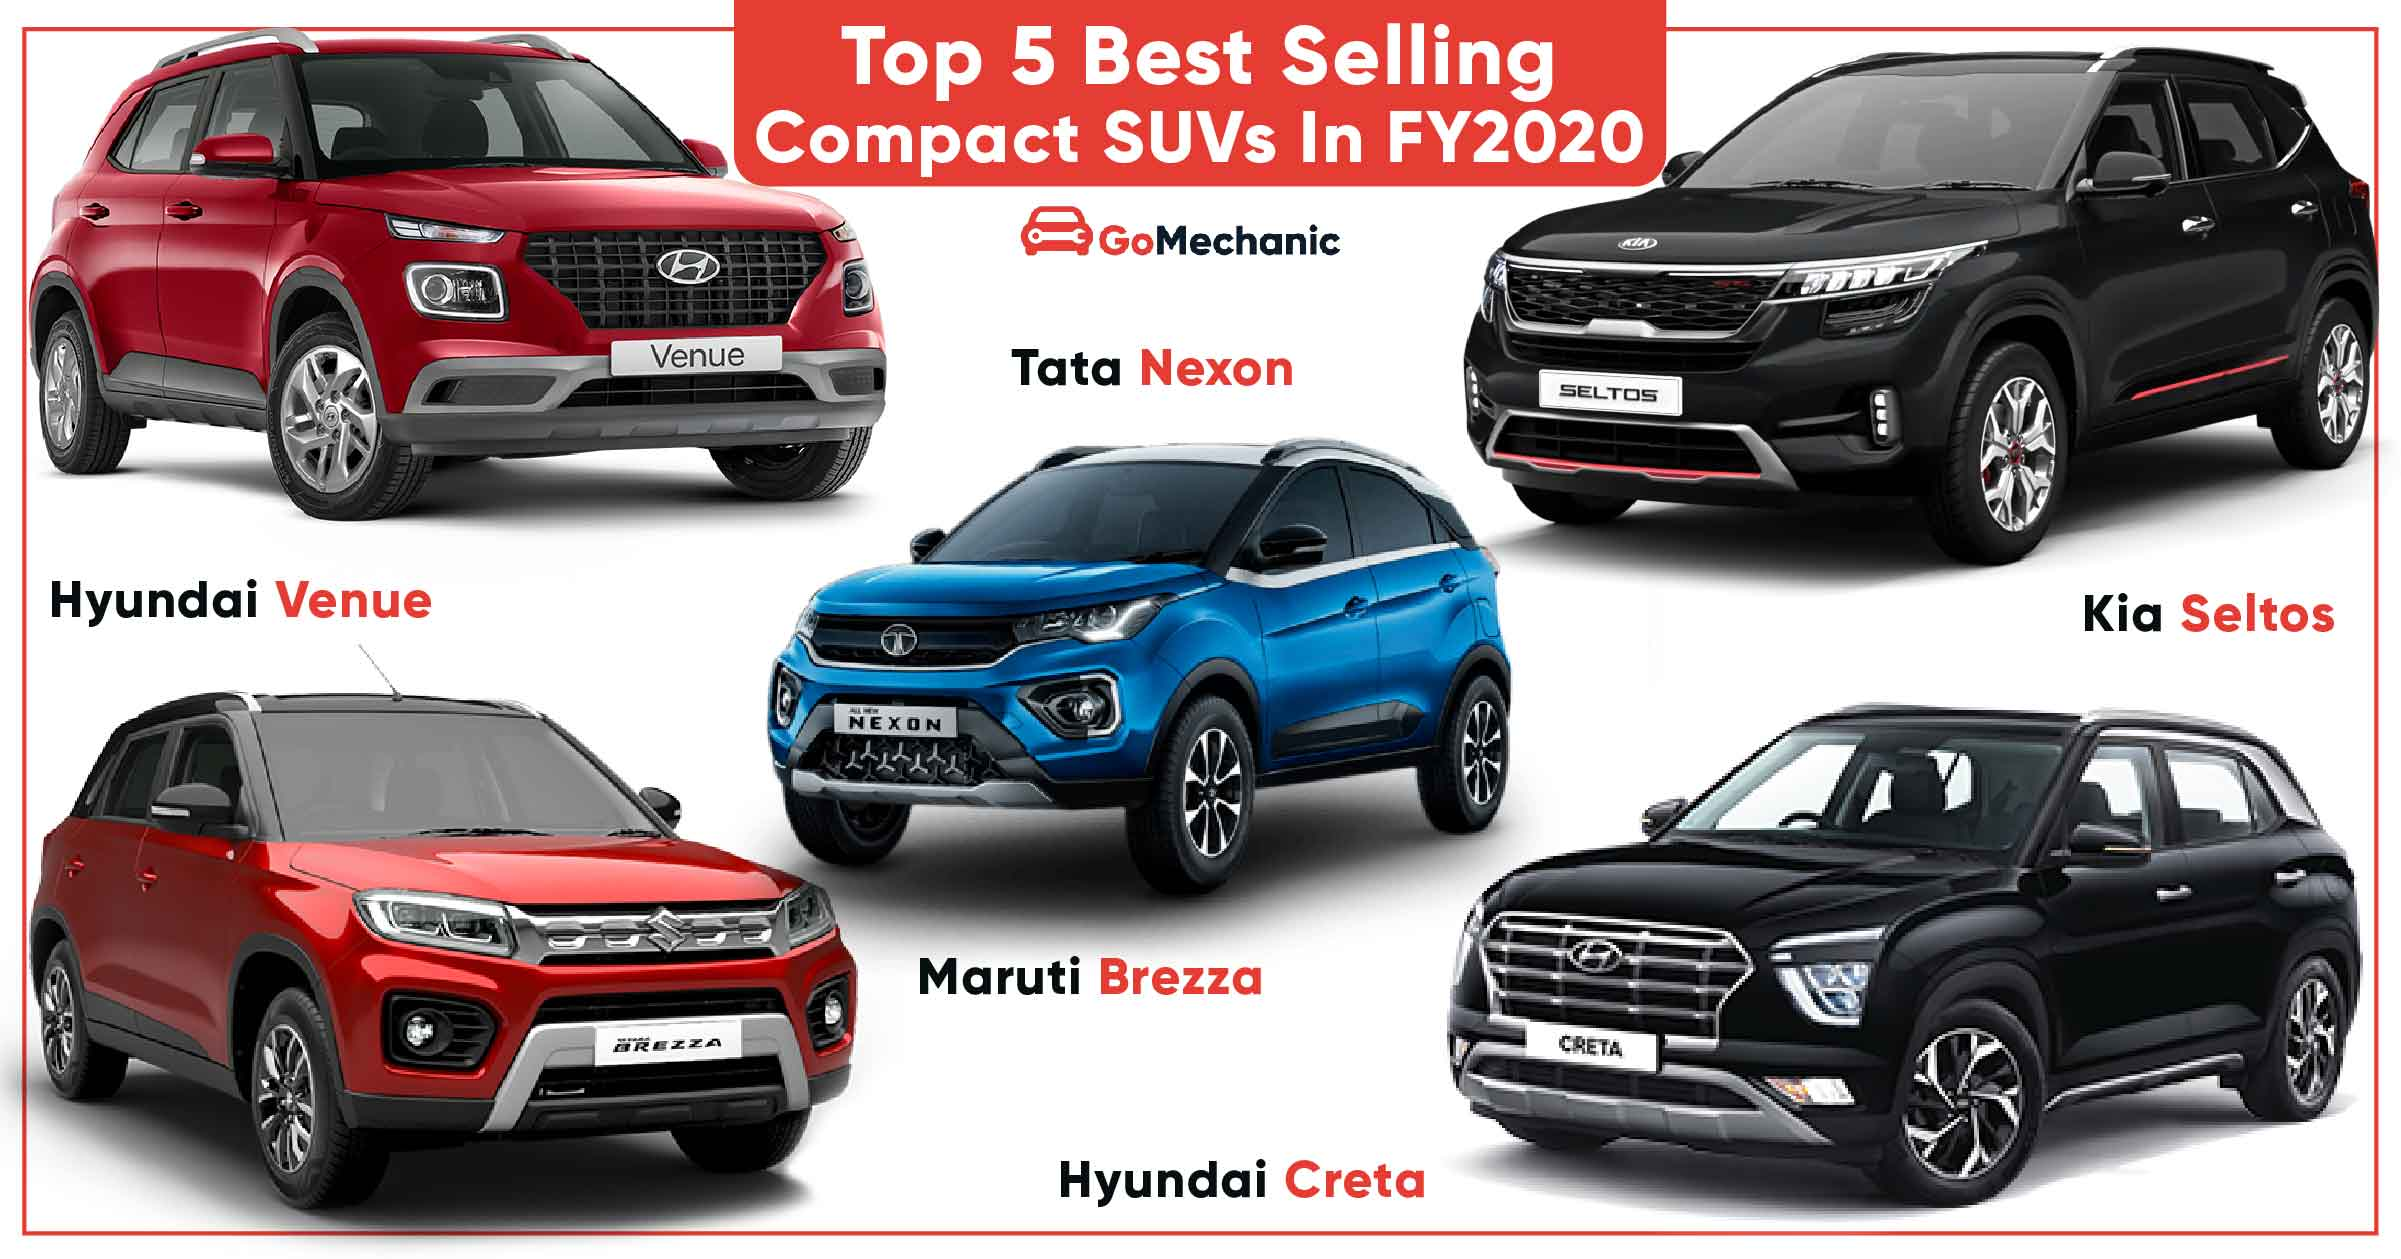 Top 5 Best Selling Compact Suvs In Fy2020